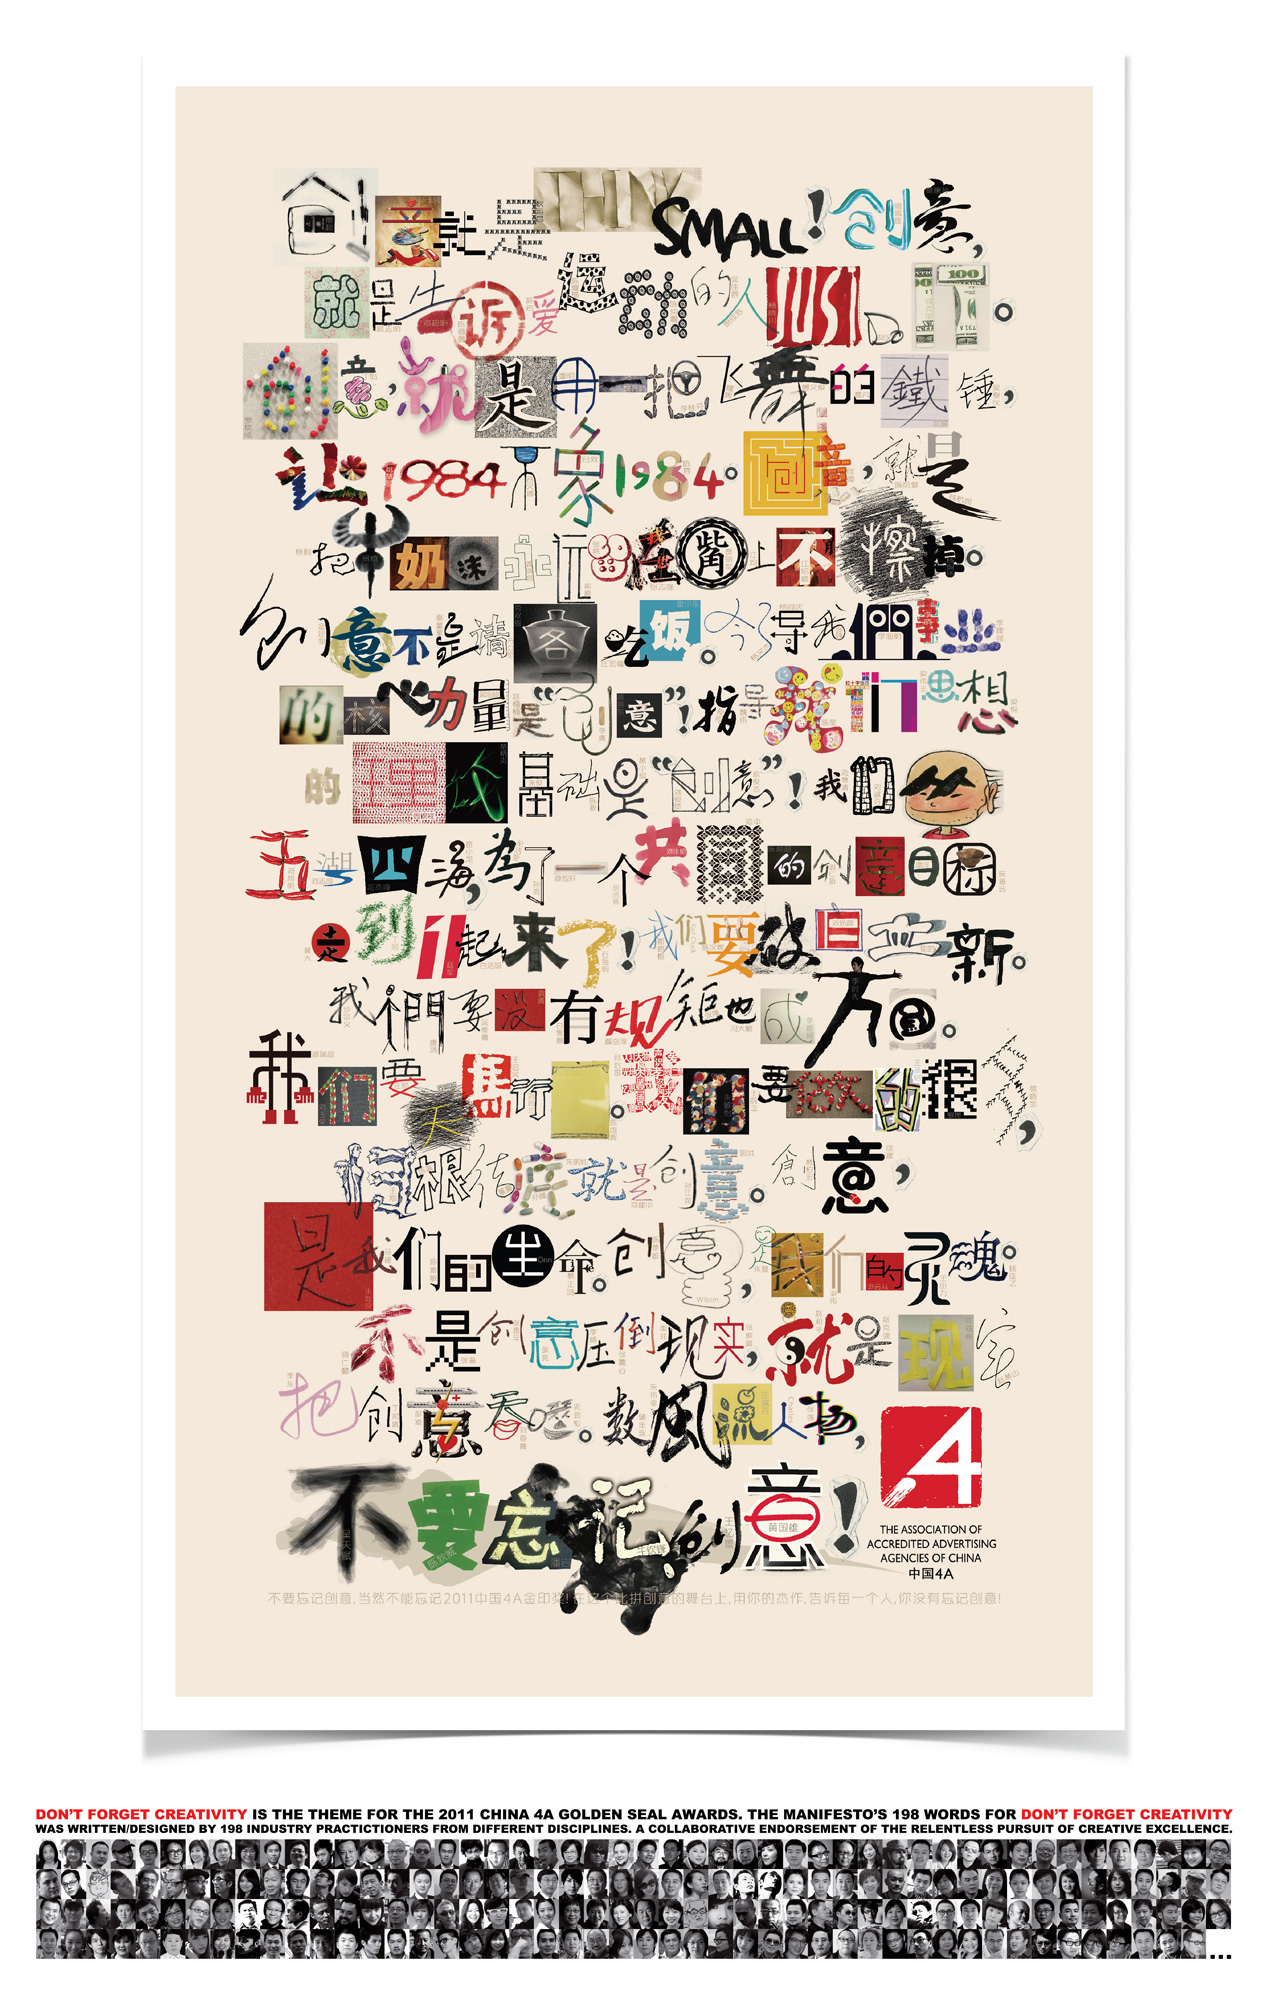 "The Association of Accredited Advertising Agencies of China: Call for entry 2011 | Ads of the Worldâ""¢"